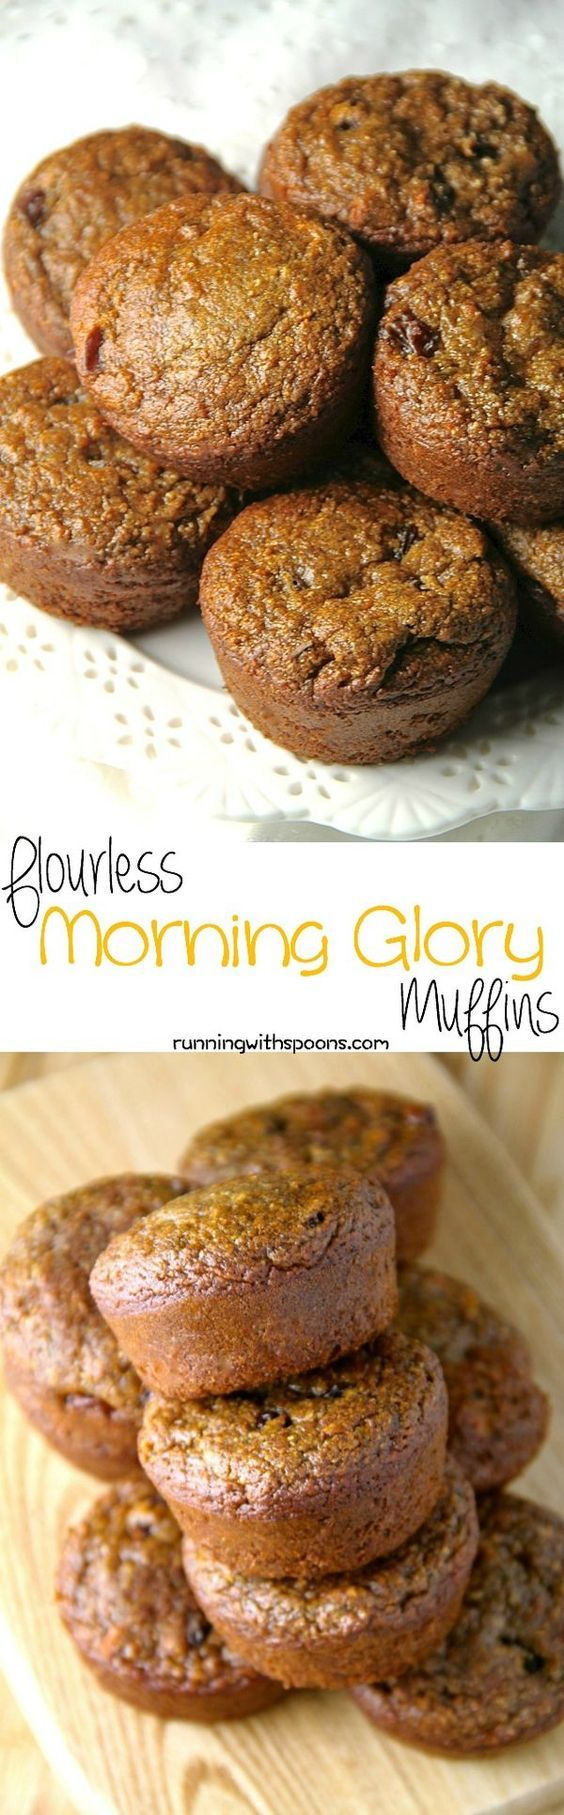 These delicious Flourless Morning Glory Muffins are gluten-free refined sugar-free dairy-free oil-free and whipped up in the blender in under 5 minutes flat! ||These delicious Flourless Morning Glory Muffins are gluten-free refined sugar-free dairy-free oil-free and whipped up in the blender in under 5 minutes flat! ||runningwithspoons...These delicious Flourless Morning Glory Muffins are gluten-free refined sugar-free dairy-free oil-free and whipped up in the blender in under 5 minutes…